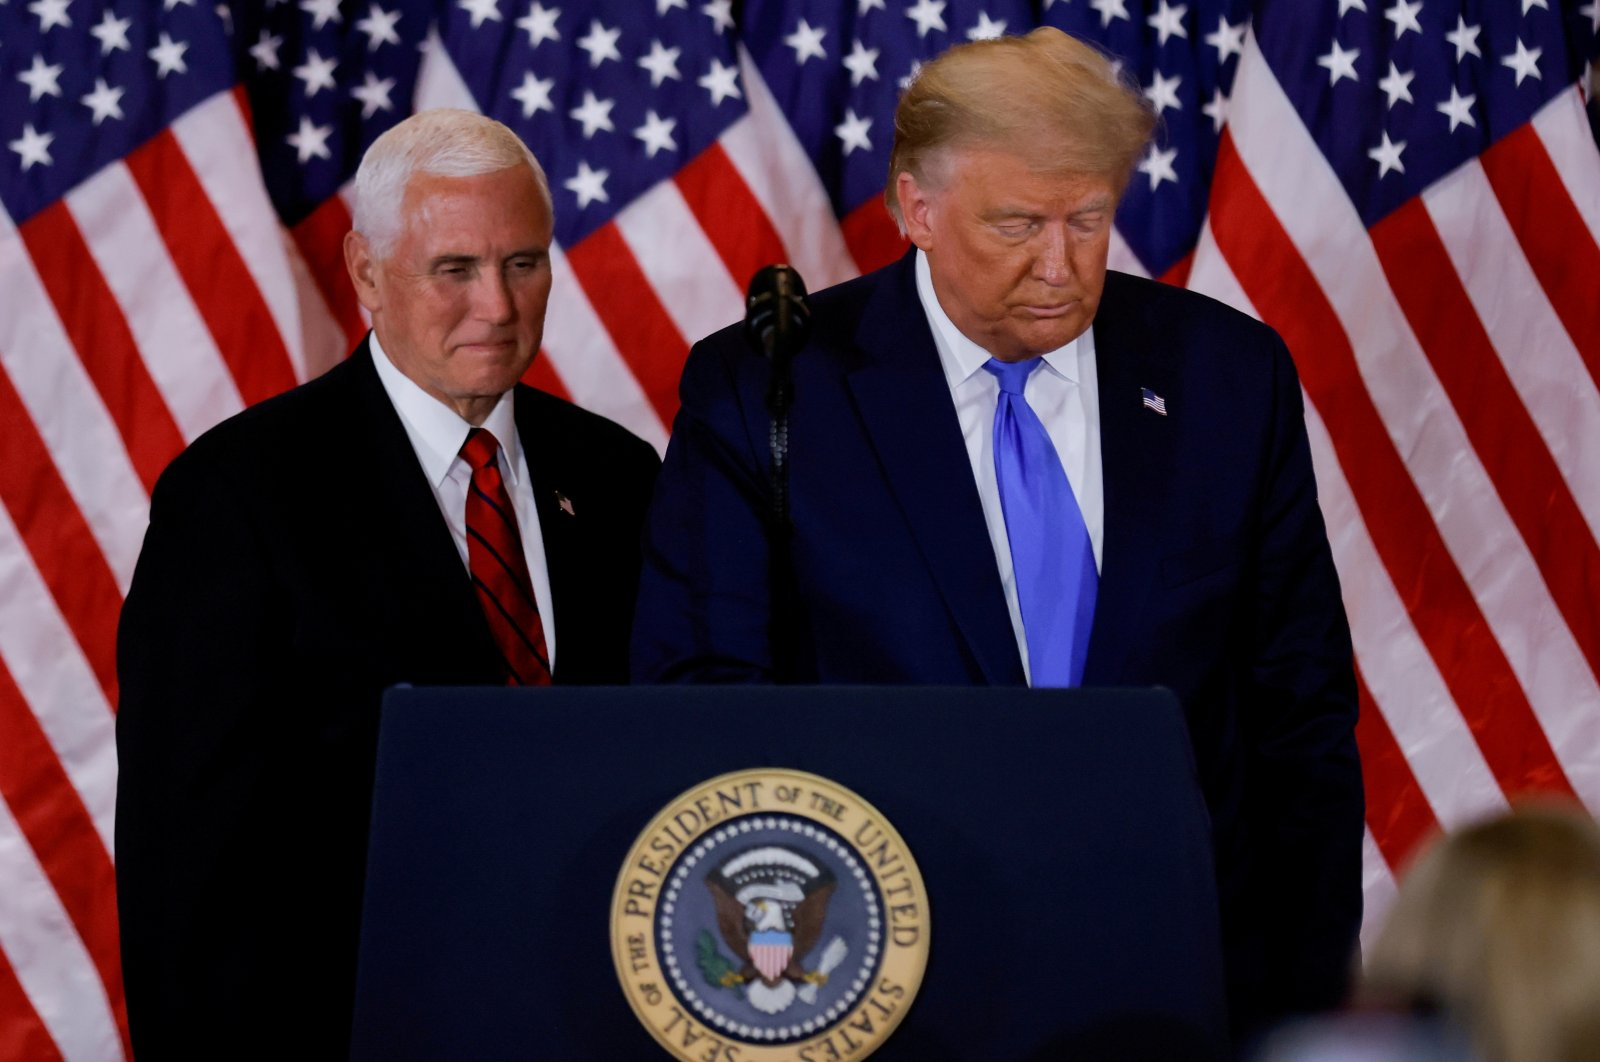 U.S. President Donald Trump and Vice President Mike Pence stand while making remarks about early results from the 2020 U.S. presidential election in the East Room of the White House in Washington, D.C., U.S., Nov. 4, 2020. (Reuters Photo)